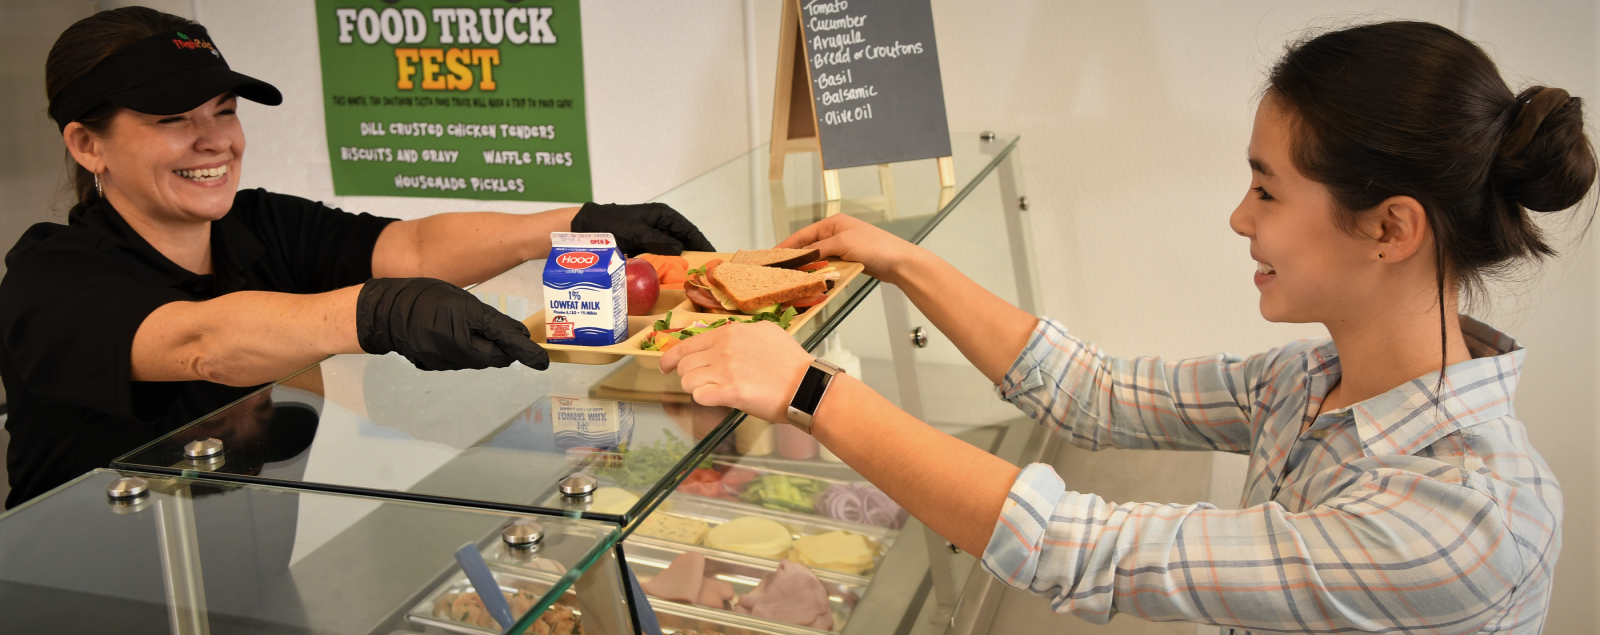 Student being served a deli lunch